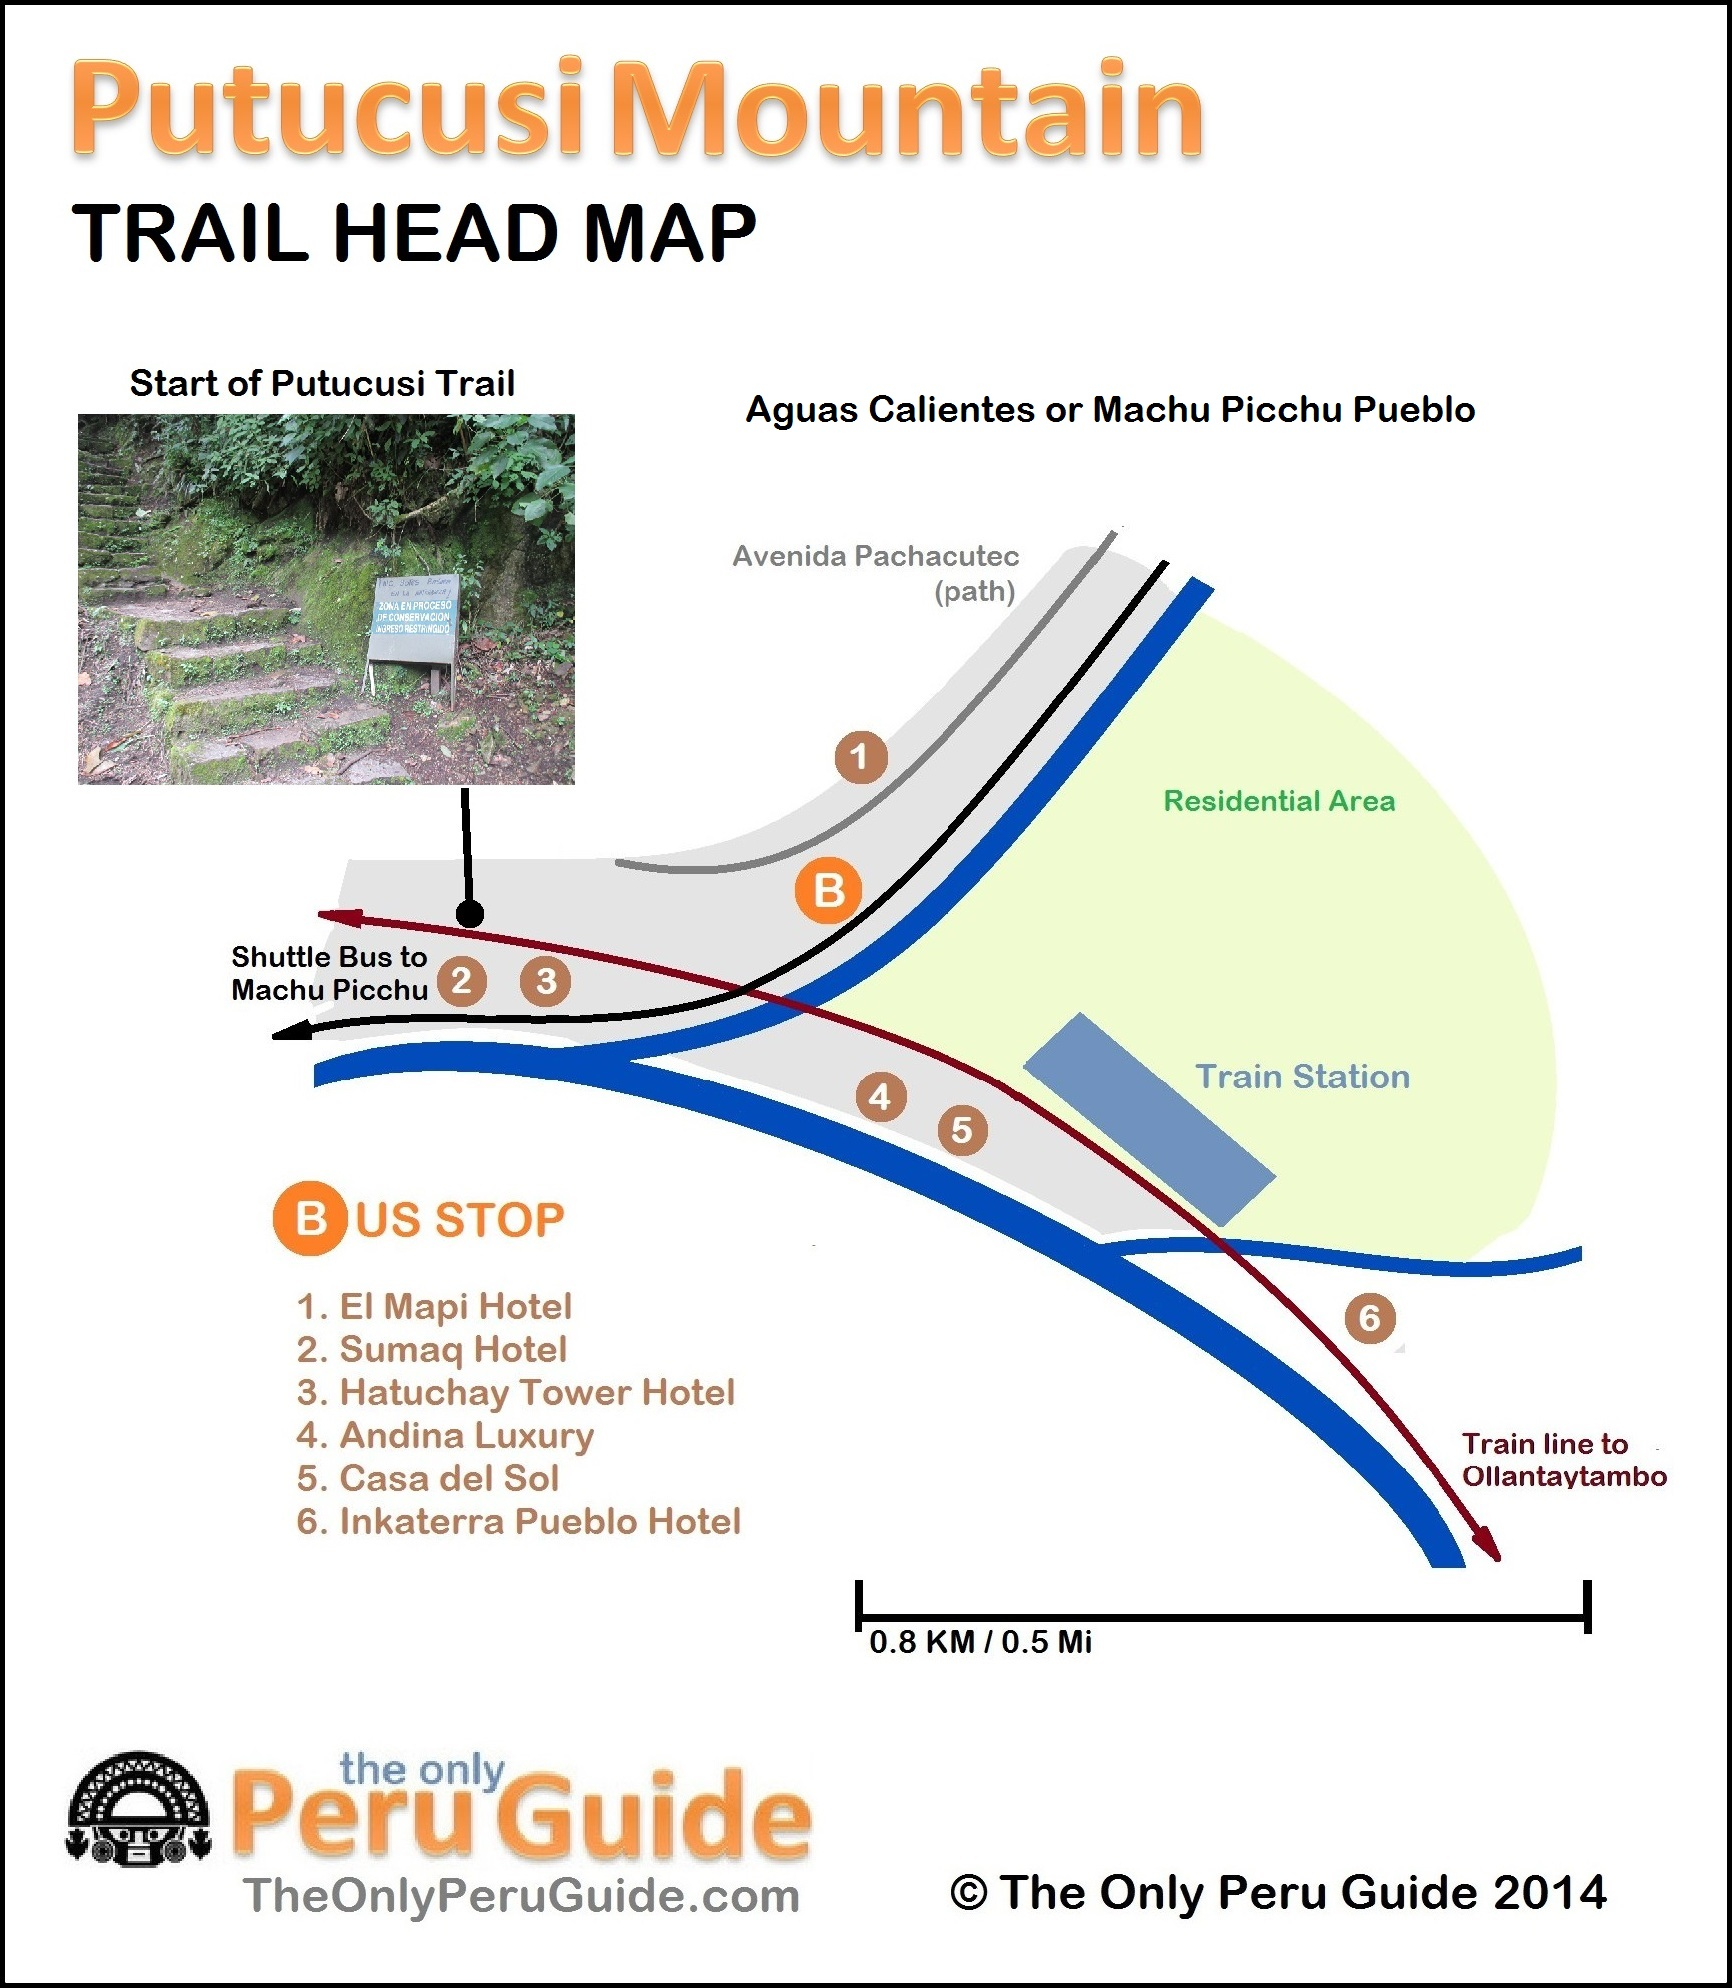 Detailed Map of Putucusi Mountain Trail Head